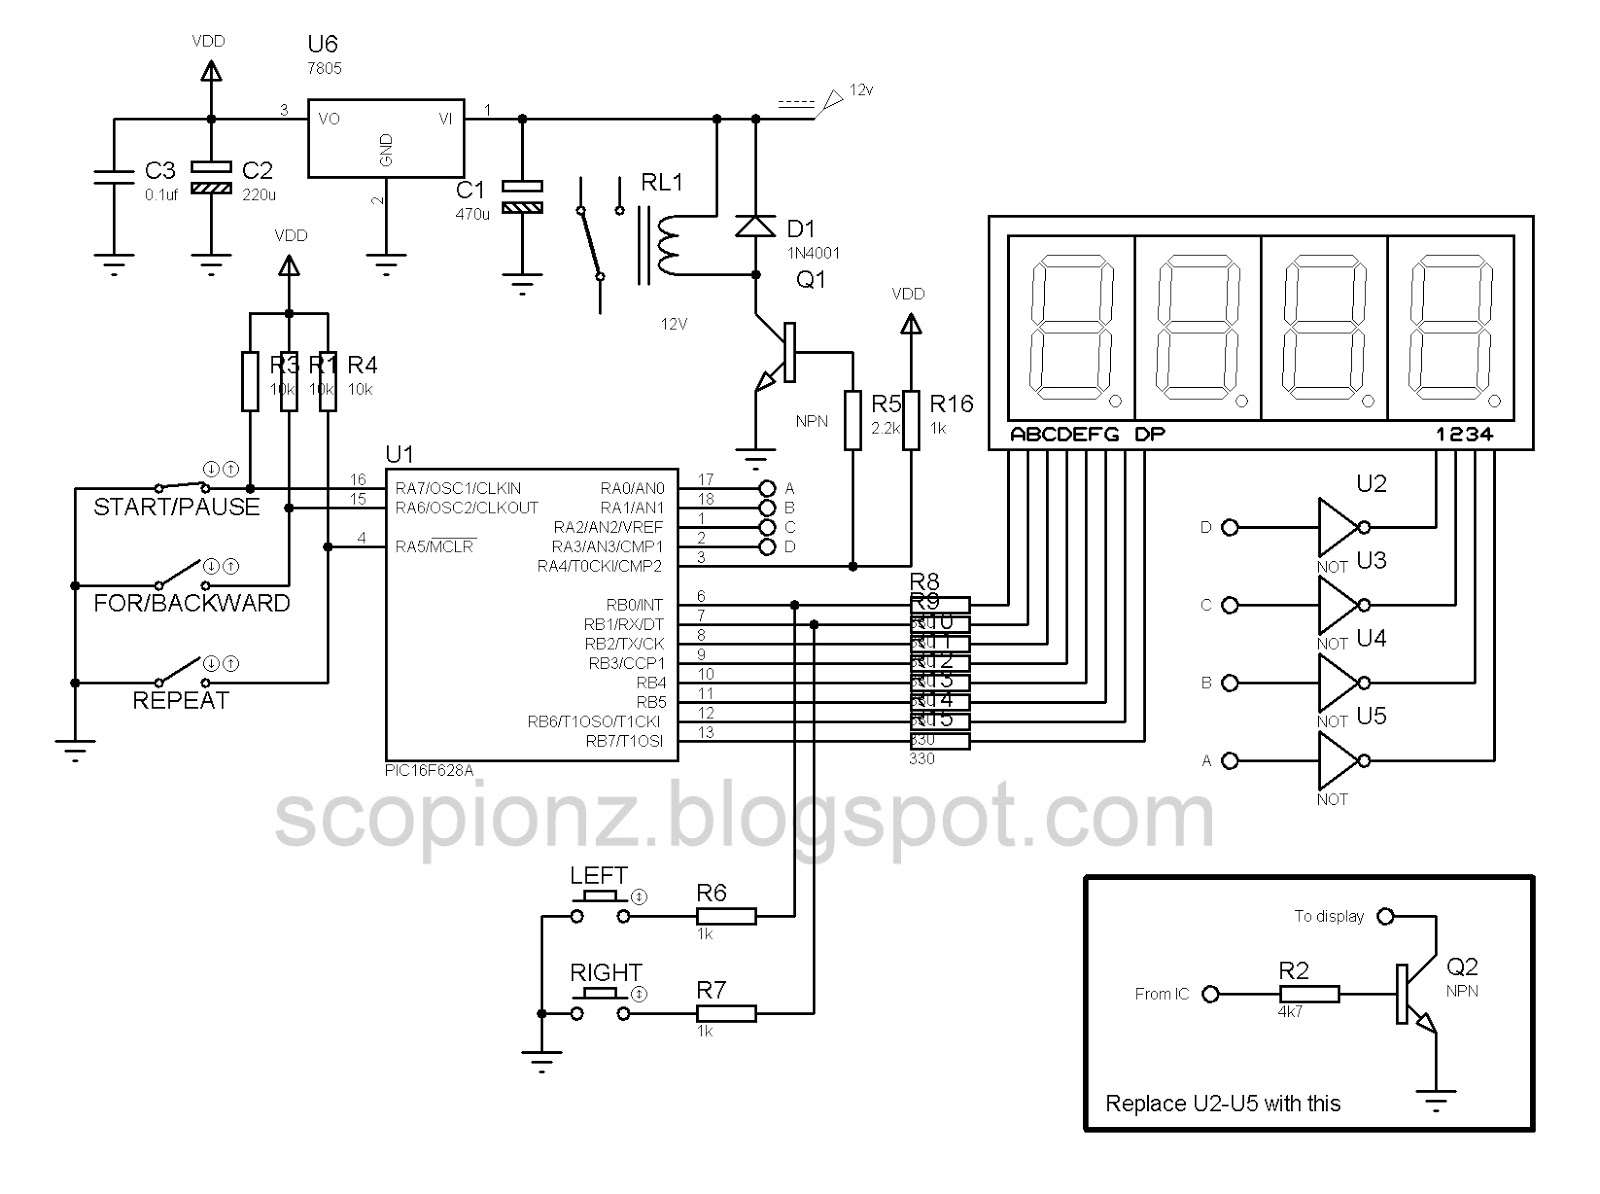 Programmable Digital Seven Segment Timer Circuit 16f628 How To Build A From Schematic Ssd Pic16f628a